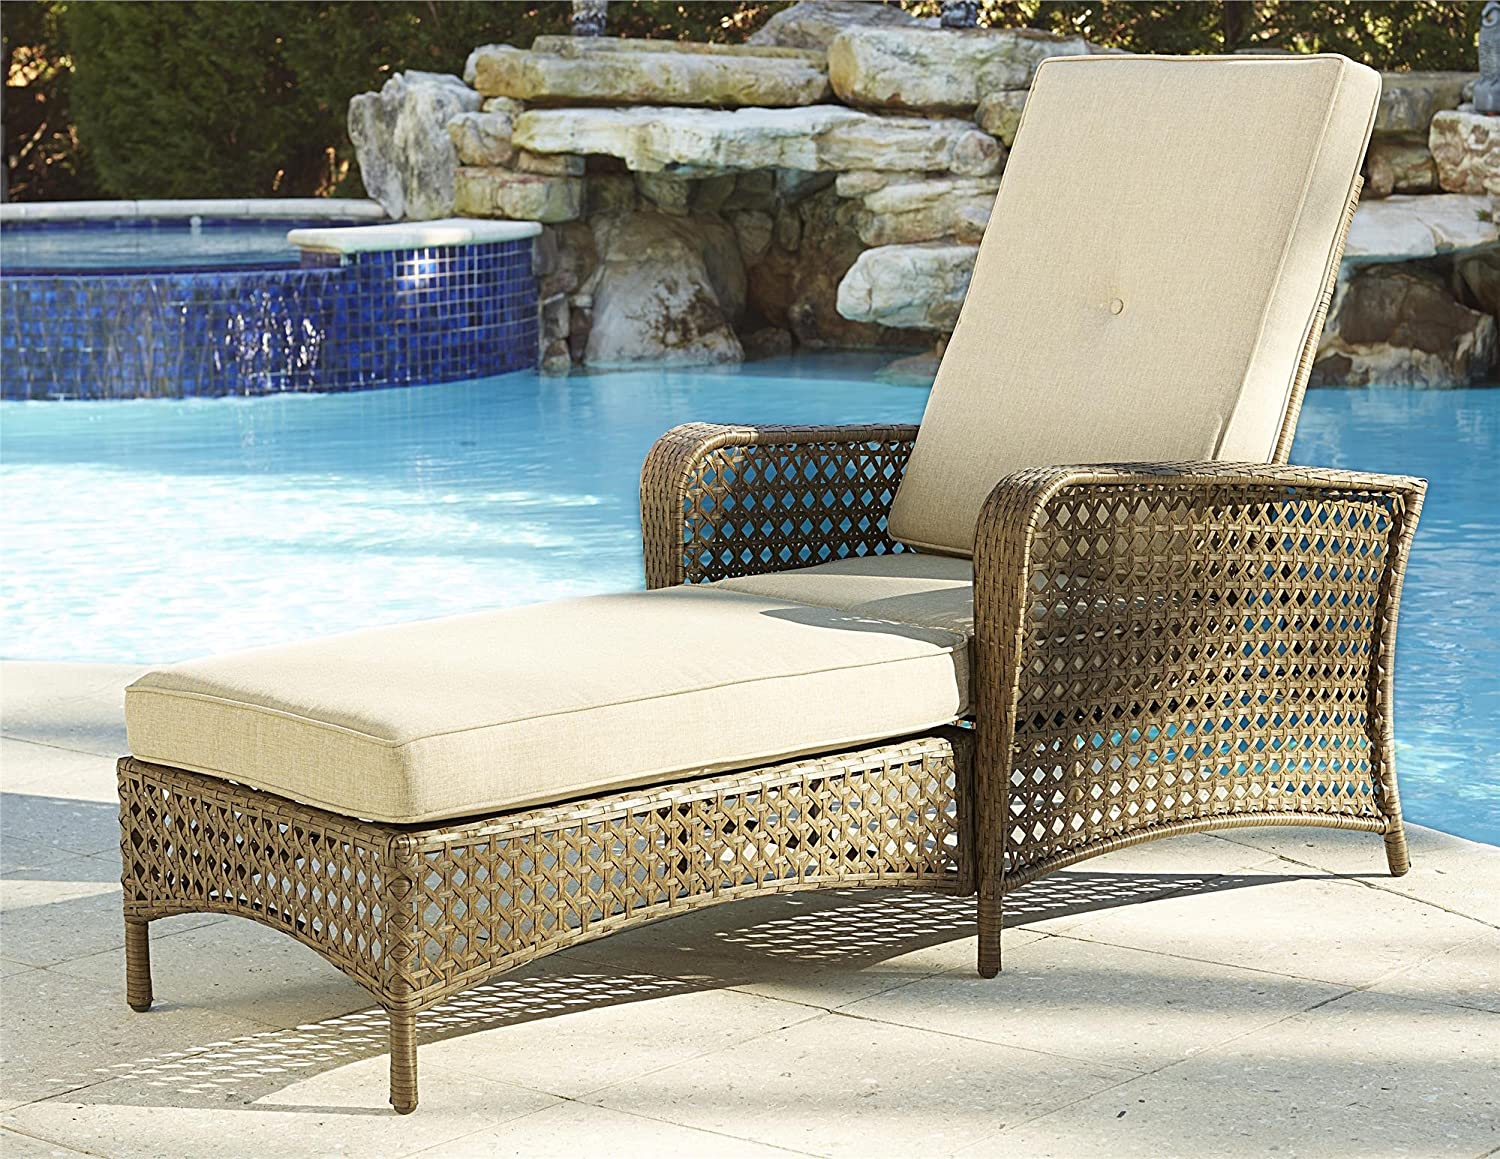 Marvelous Amazon.com: Cosco Outdoor Adjustable Chaise Lounge Chair Lakewood Ranch  Steel Woven Wicker Patio Furniture With Cushion, Brown: Garden U0026 Outdoor